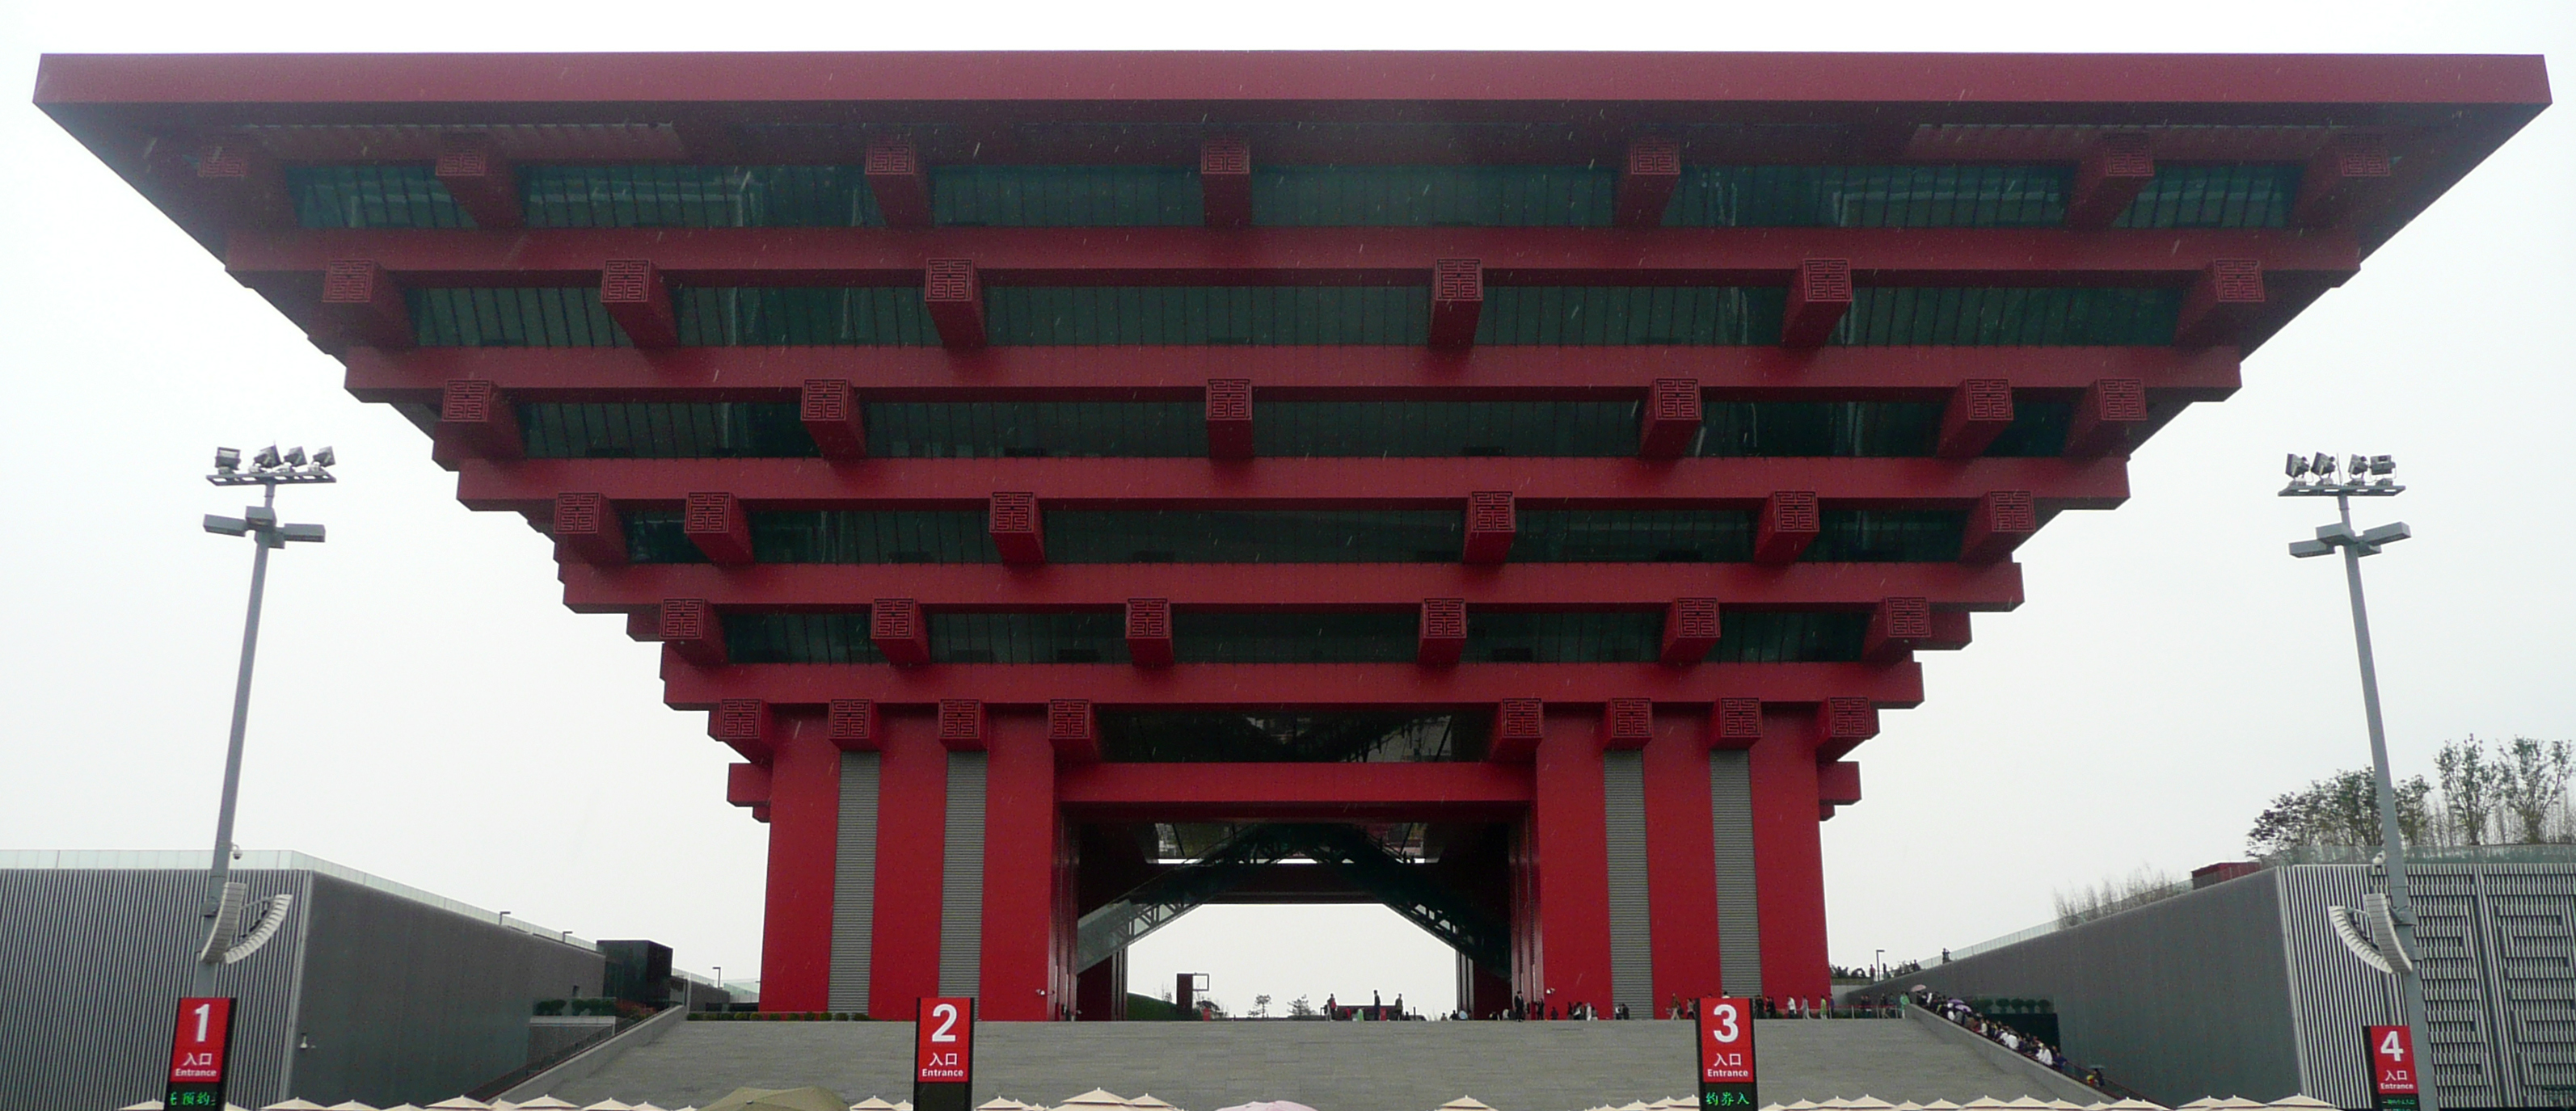 File:China Pavilion Expo 2010.jpg - Wikimedia Commons